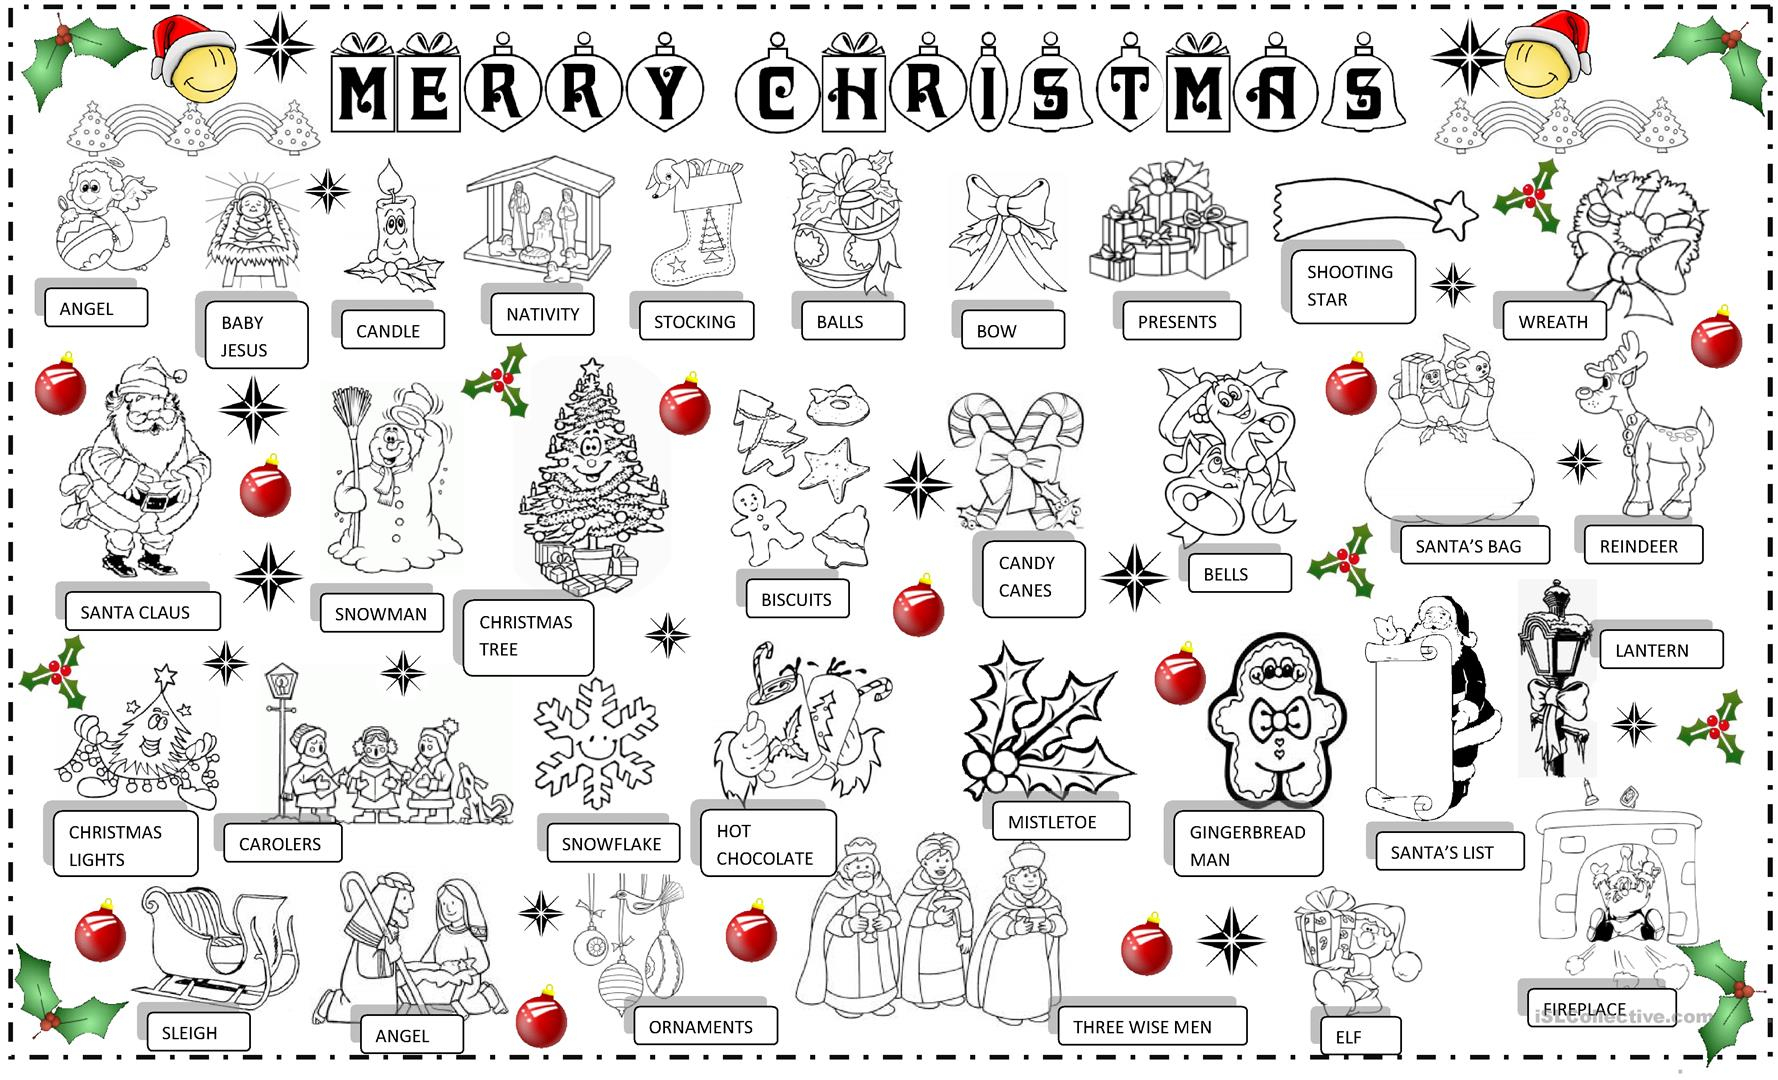 Christmas Pictionary Worksheet - Free Esl Printable Worksheets Made - Free Printable Christmas Pictionary Words